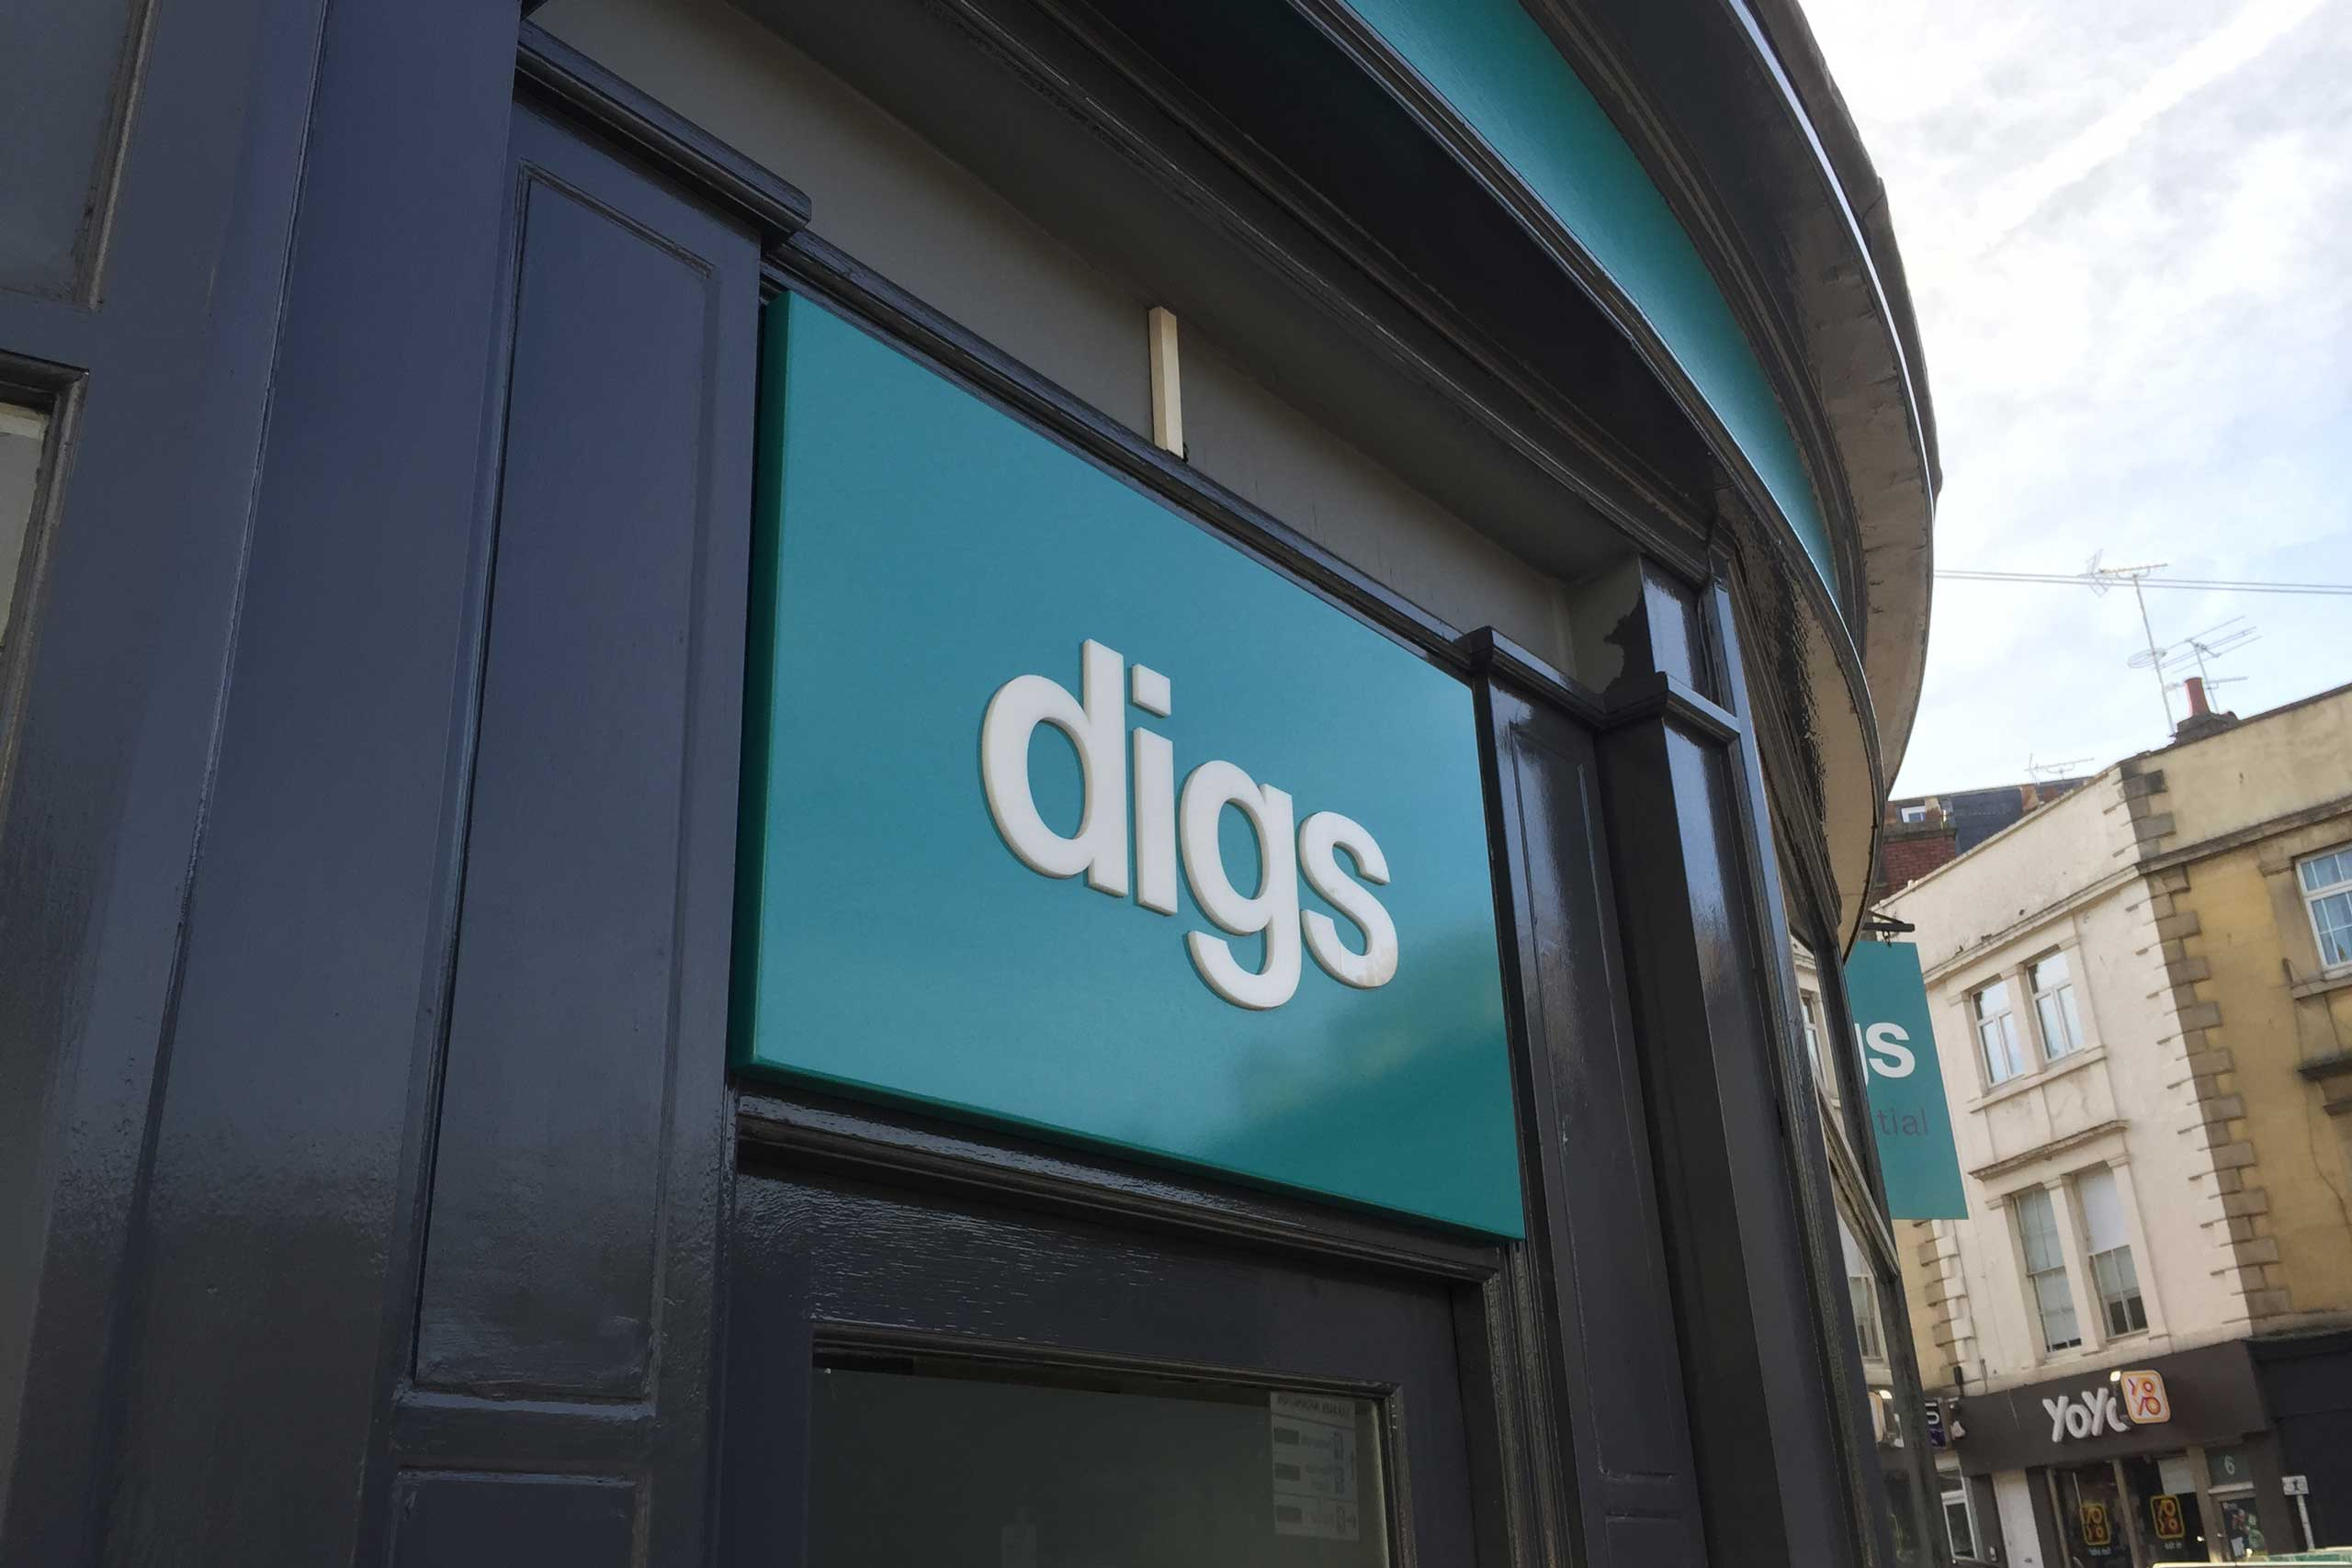 Digs Bristol Letting and Property Management sign above the door